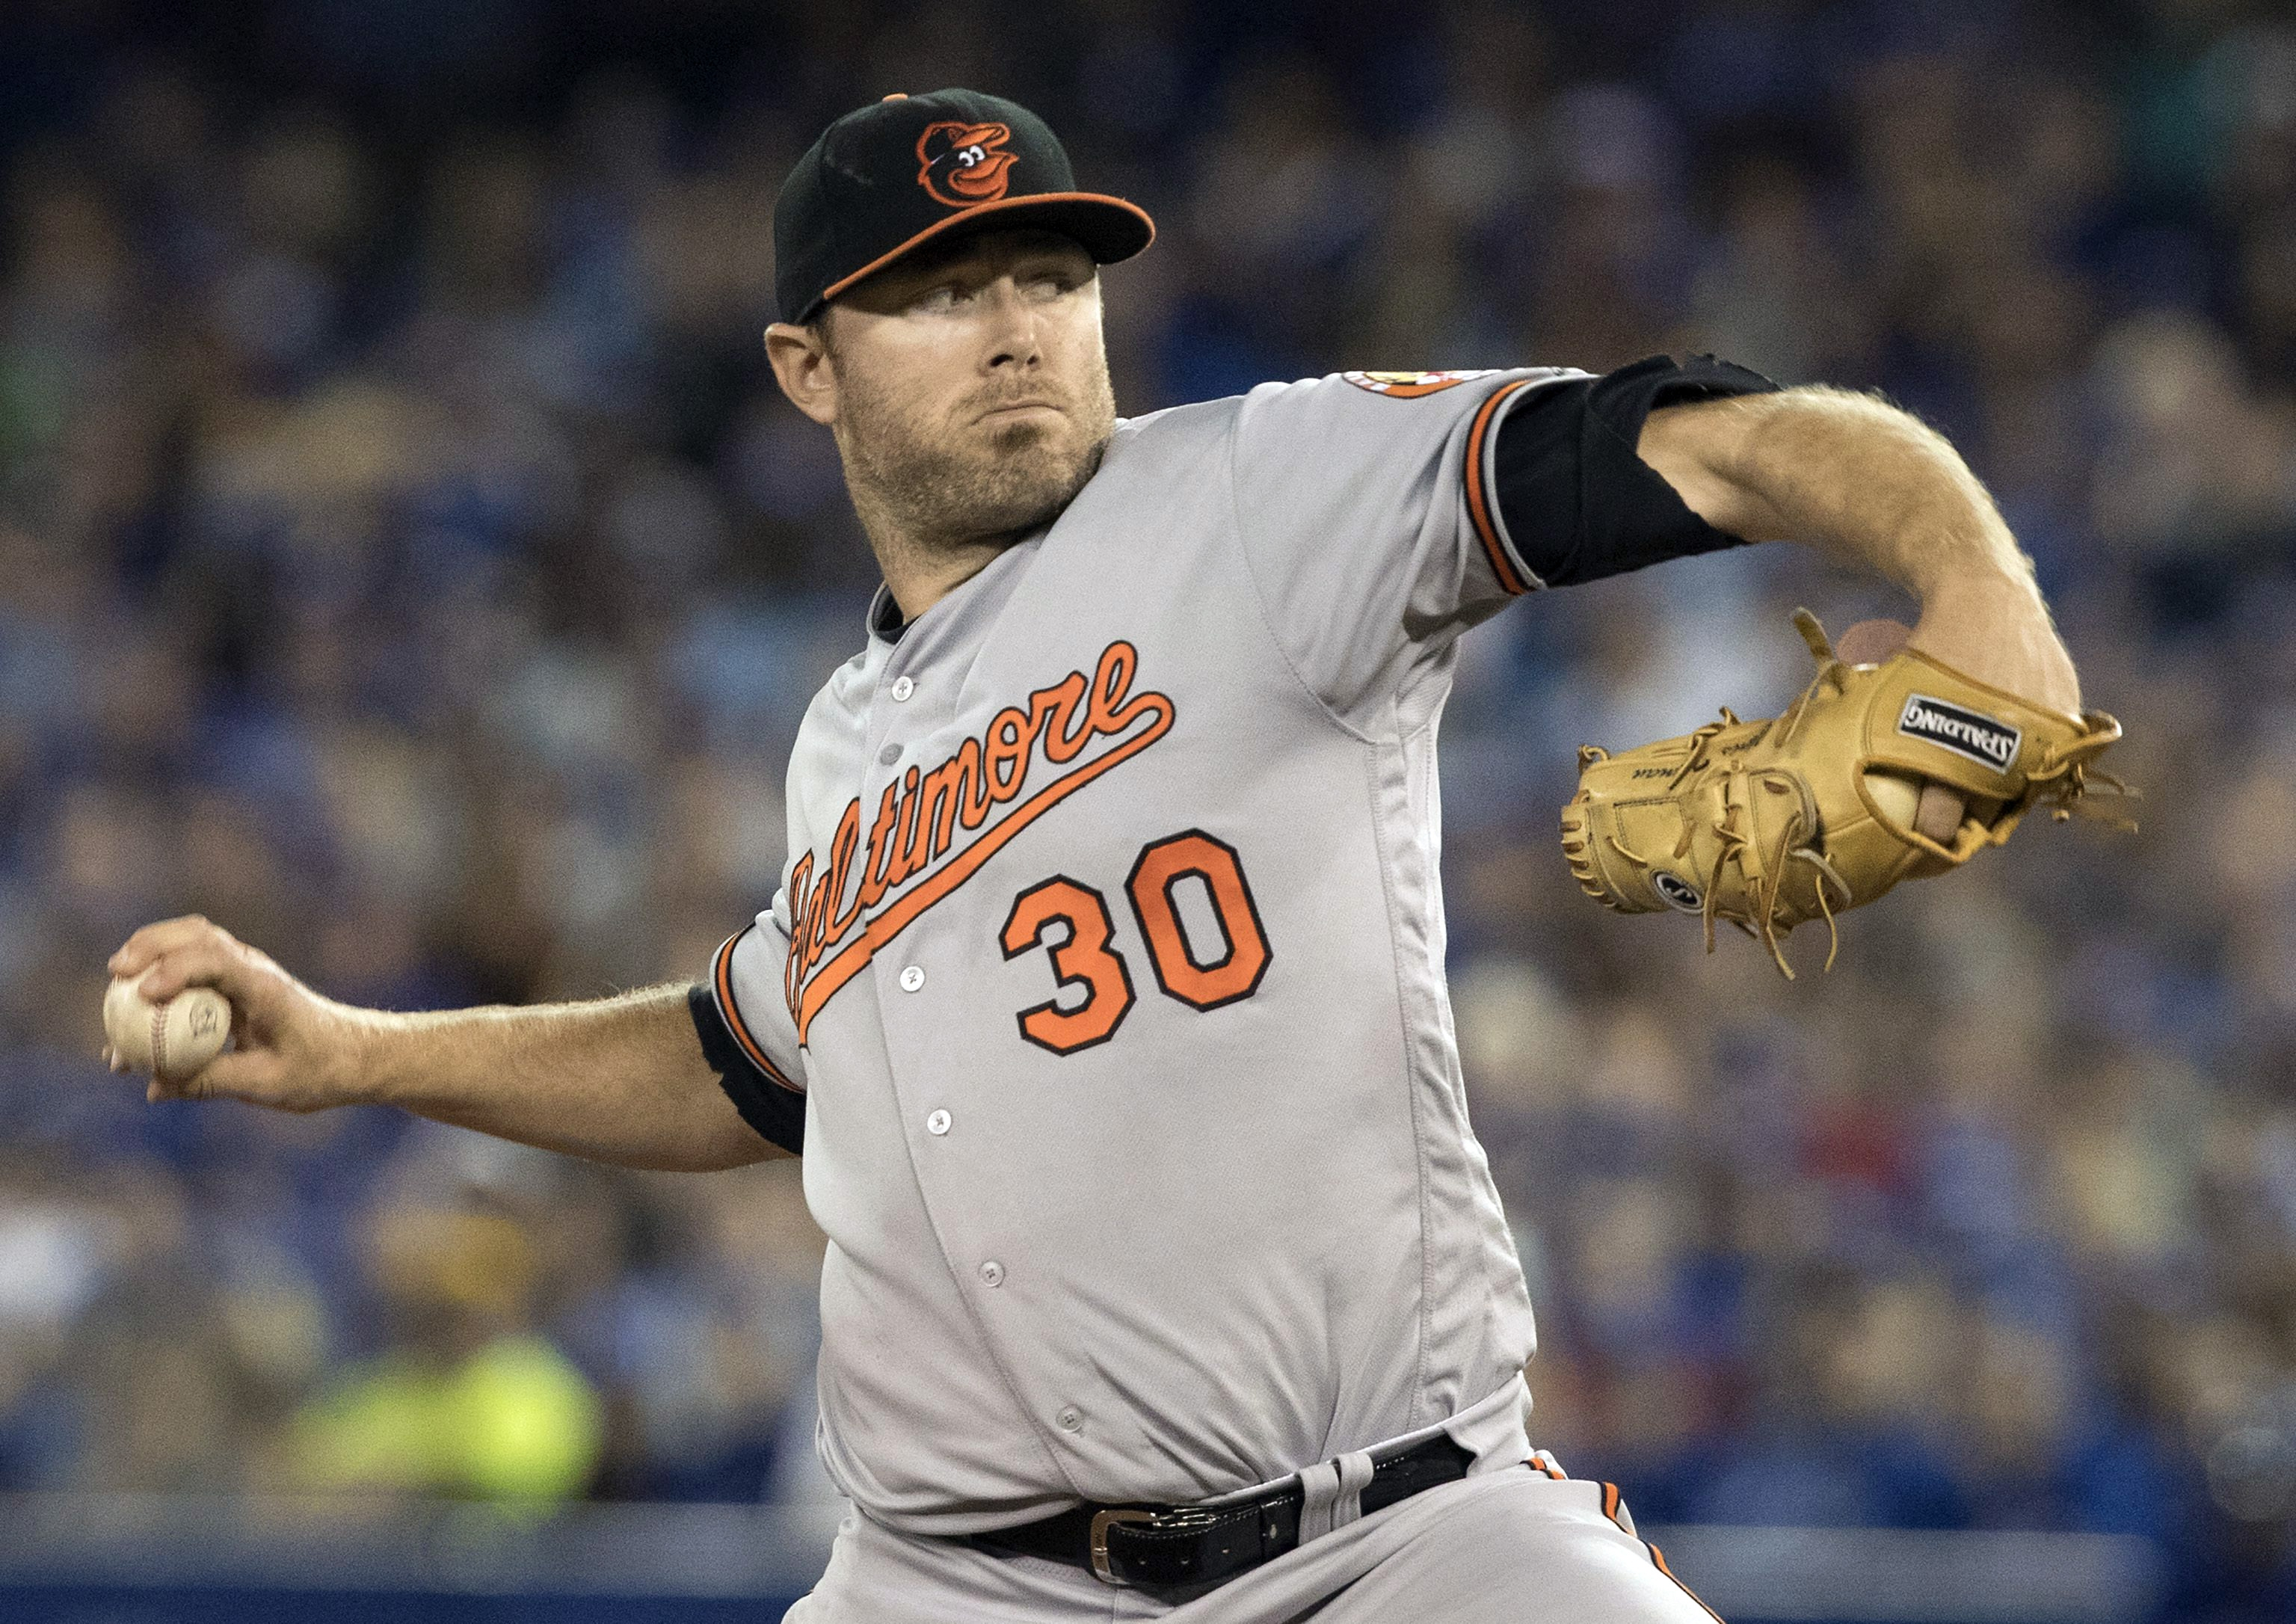 Baltimore Orioles starting pitcher Chris Tillman throws against the Toronto Blue Jays during the first inning of a baseball game in Toronto, Sunday, July 31, 2016. (Fred Thornhill/The Canadian Press via AP)